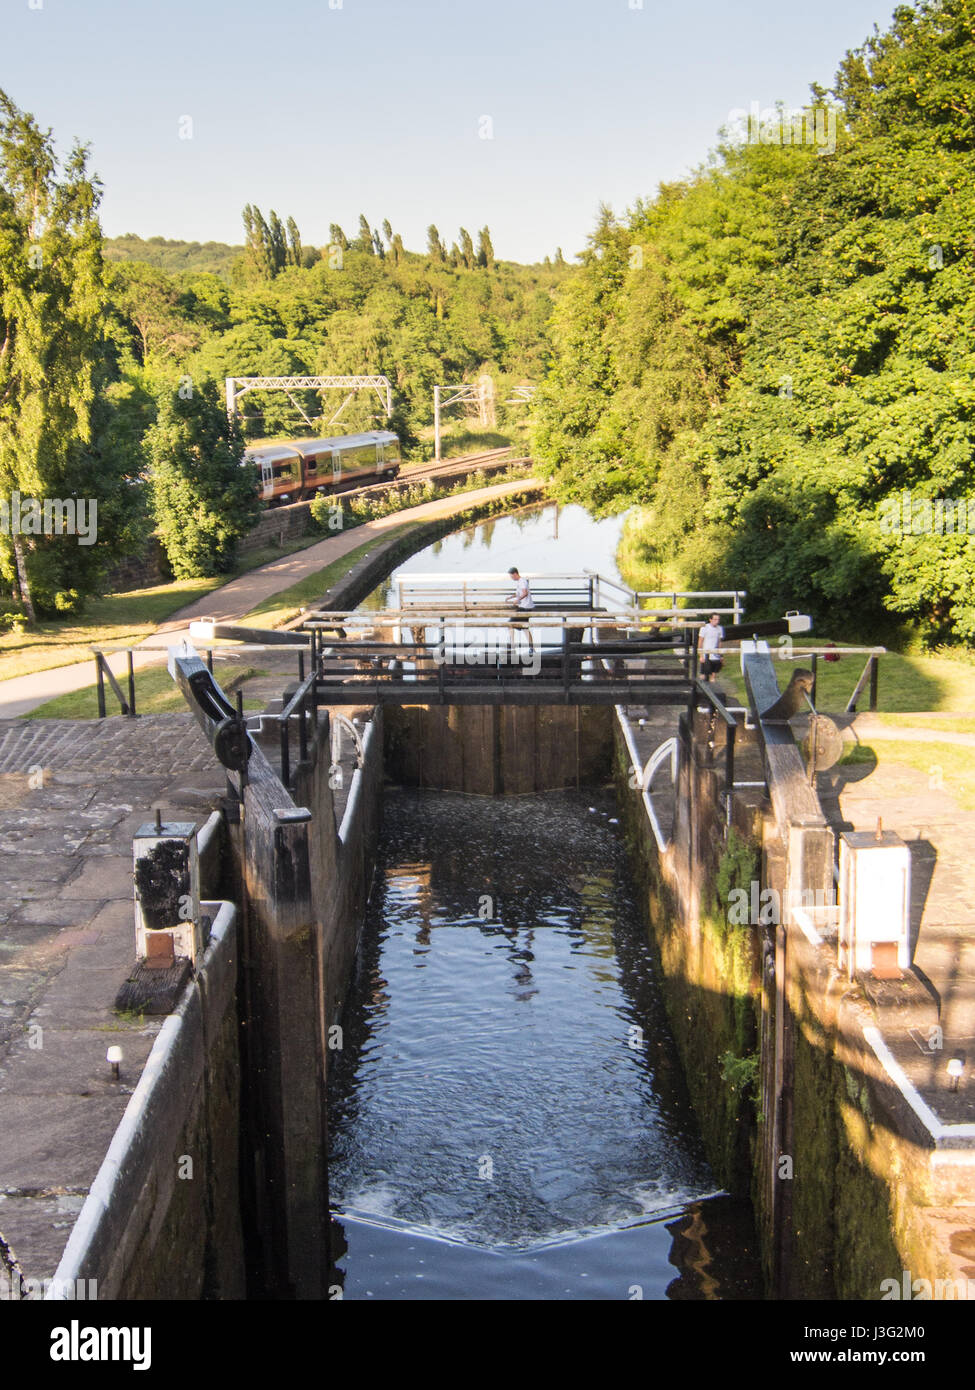 A Northern Rail passenger train on the Airedale Line railway passes the flight of staircase locks at Kirkstall Forge - Stock Image